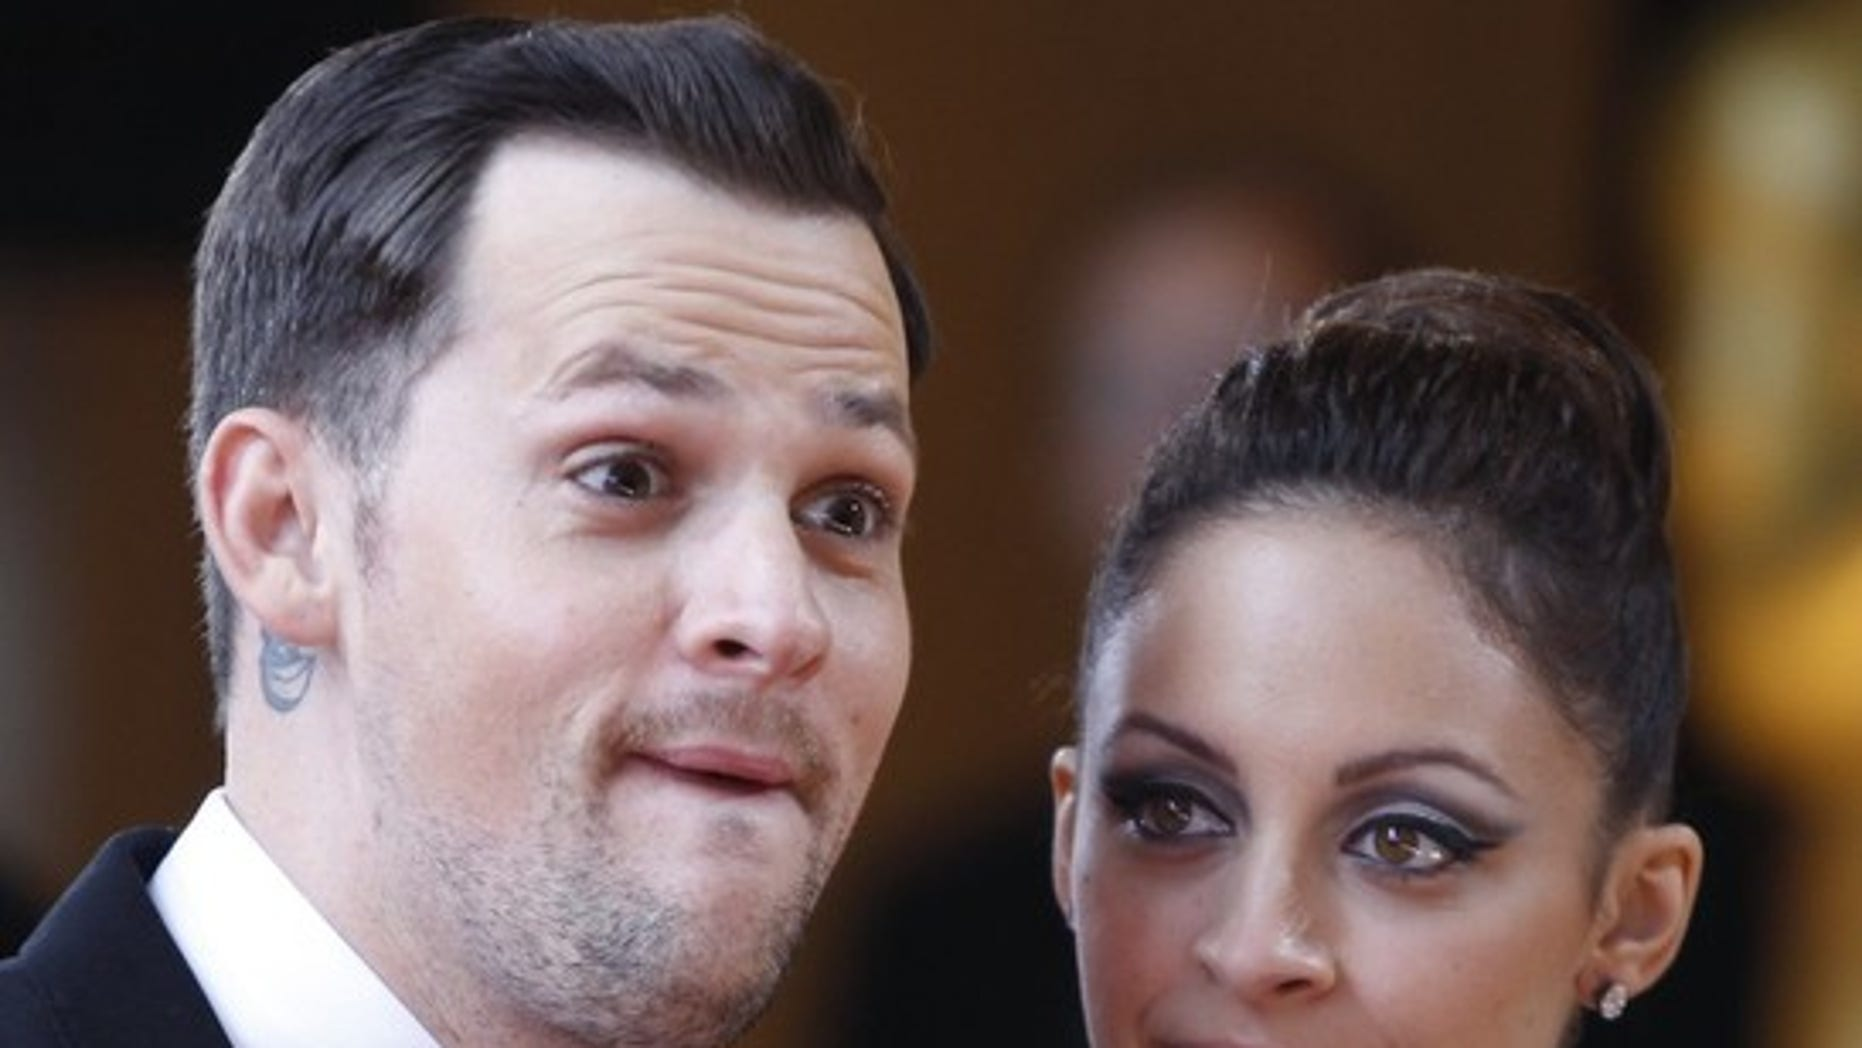 Nicole Richie and her fiancee musician Joel Madden arrive at the 82nd Academy Awards in Hollywood, March 7, 2010.   REUTERS/Lucas Jackson   (UNITED STATES)   (OSCARS-ARRIVALS - Tags: ENTERTAINMENT HEADSHOT)